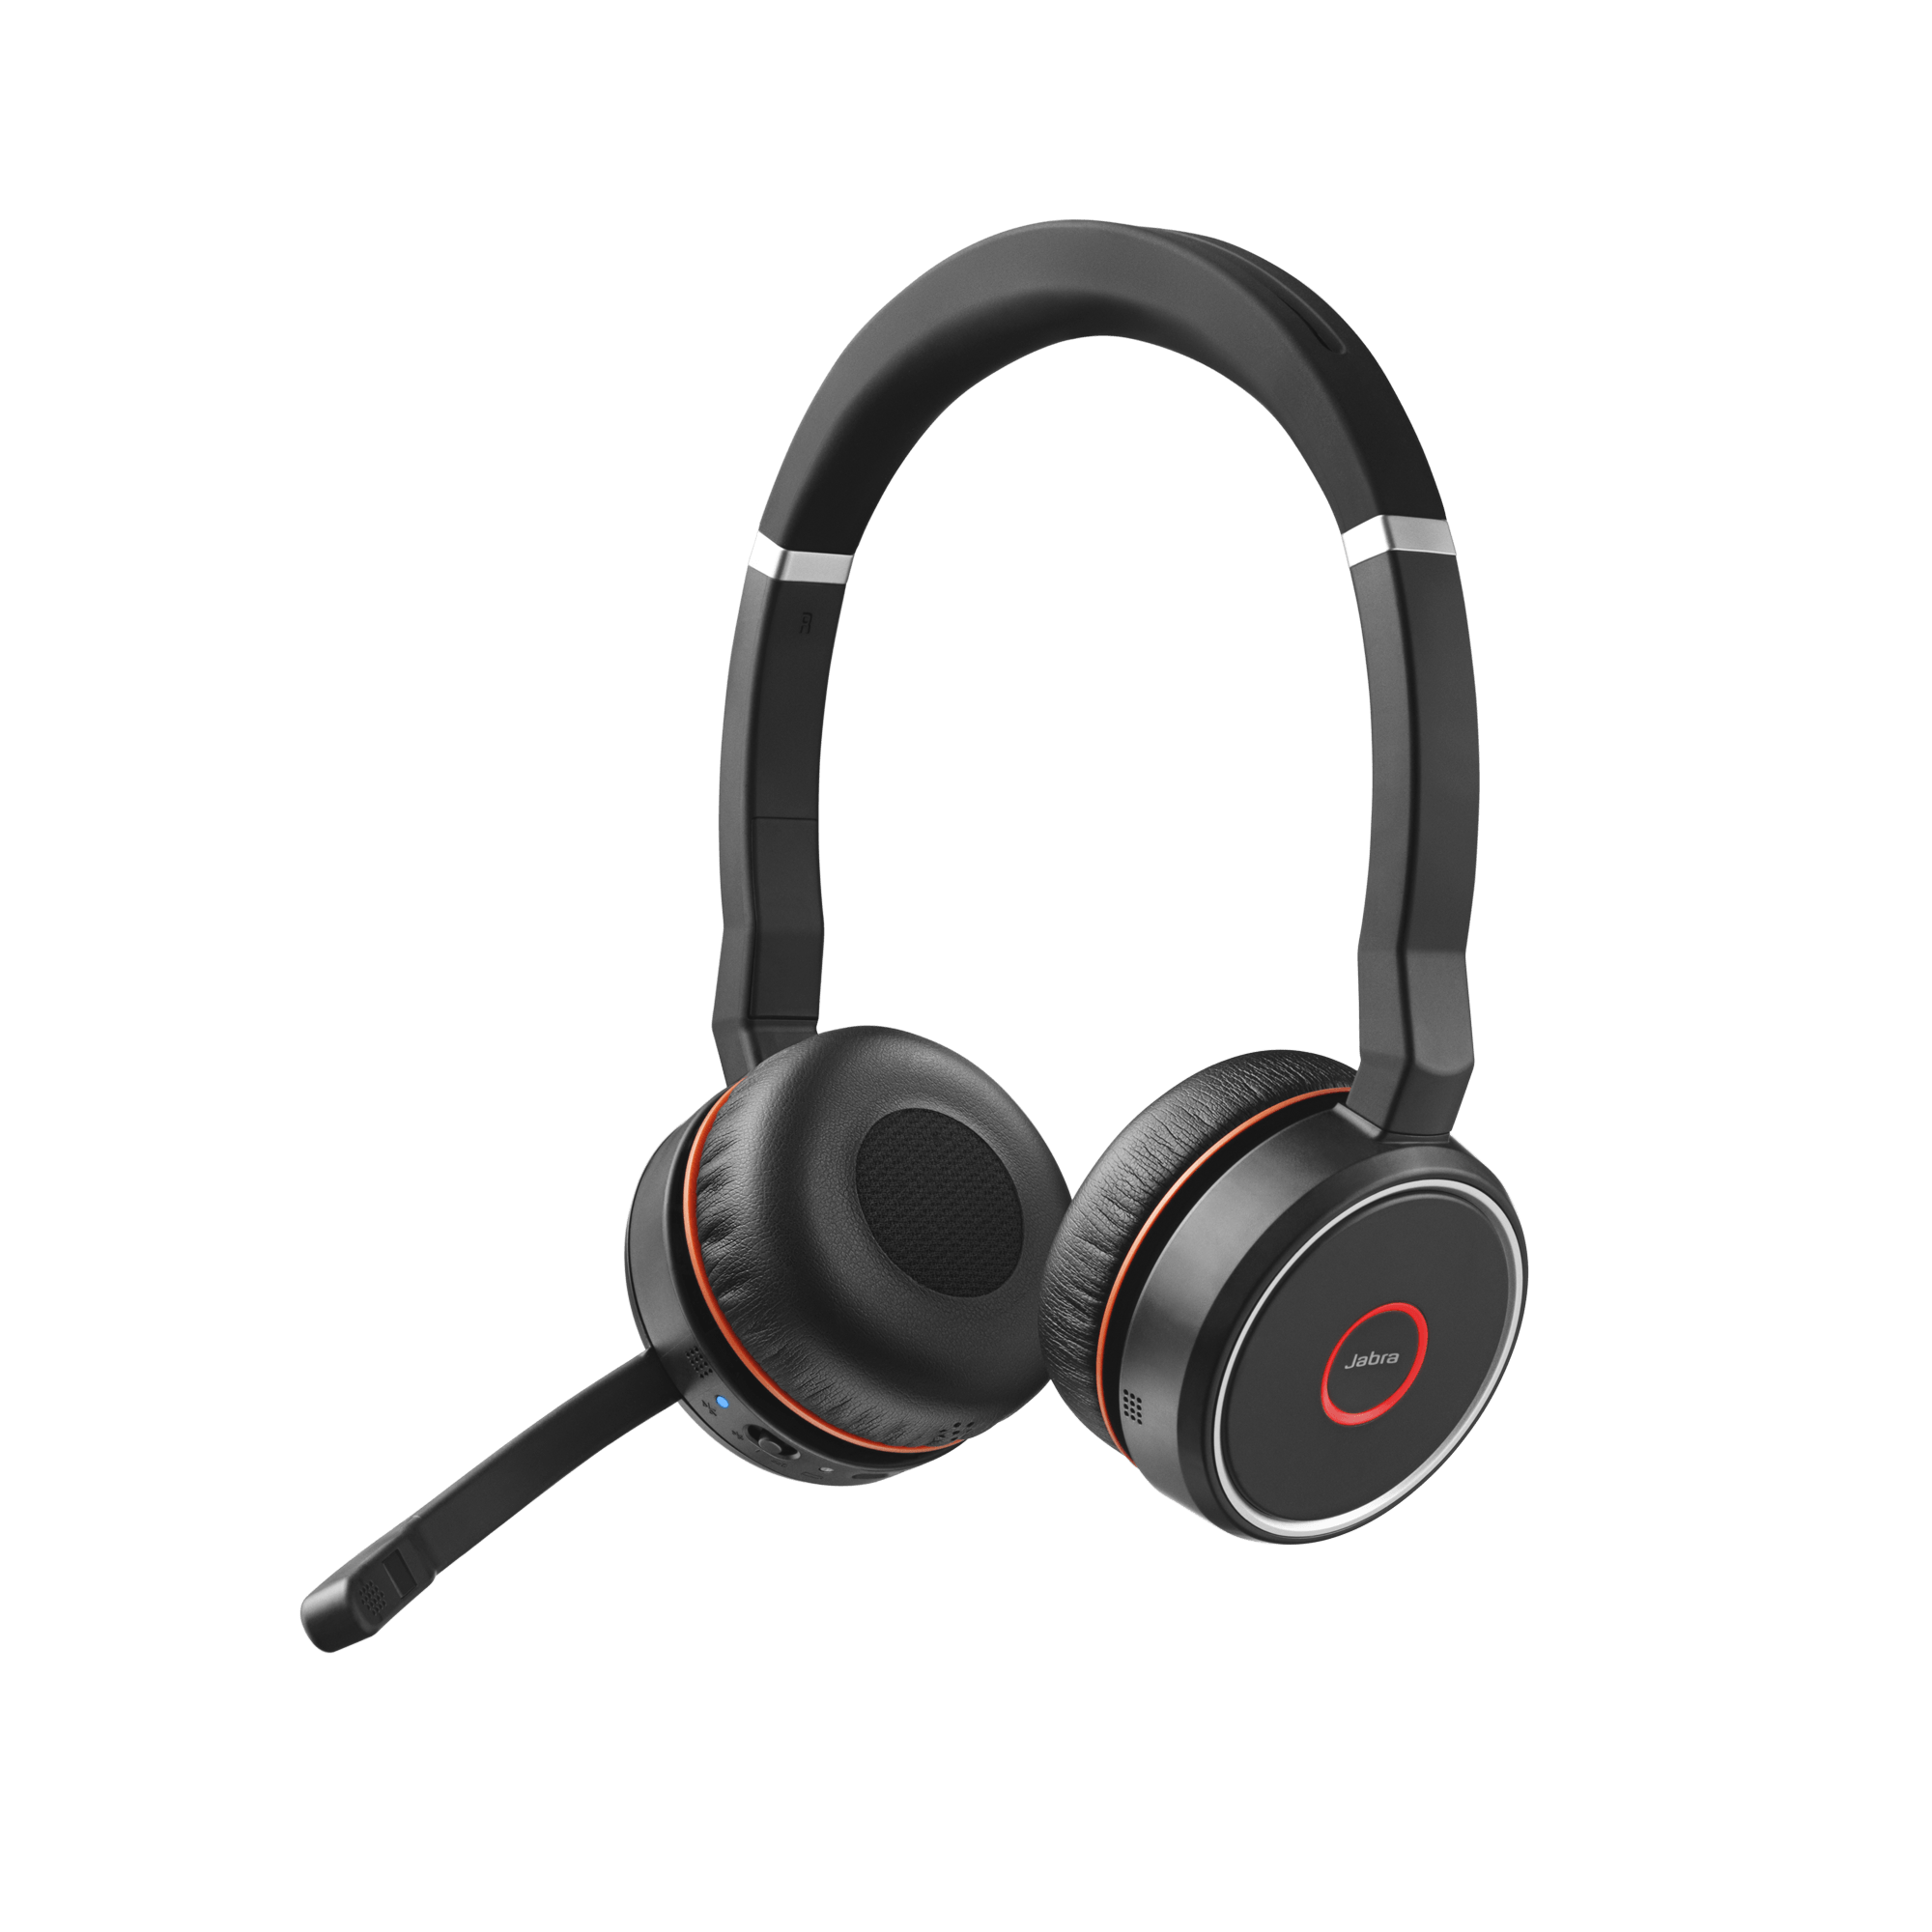 01 Jabra Evolve 75 product angle busy